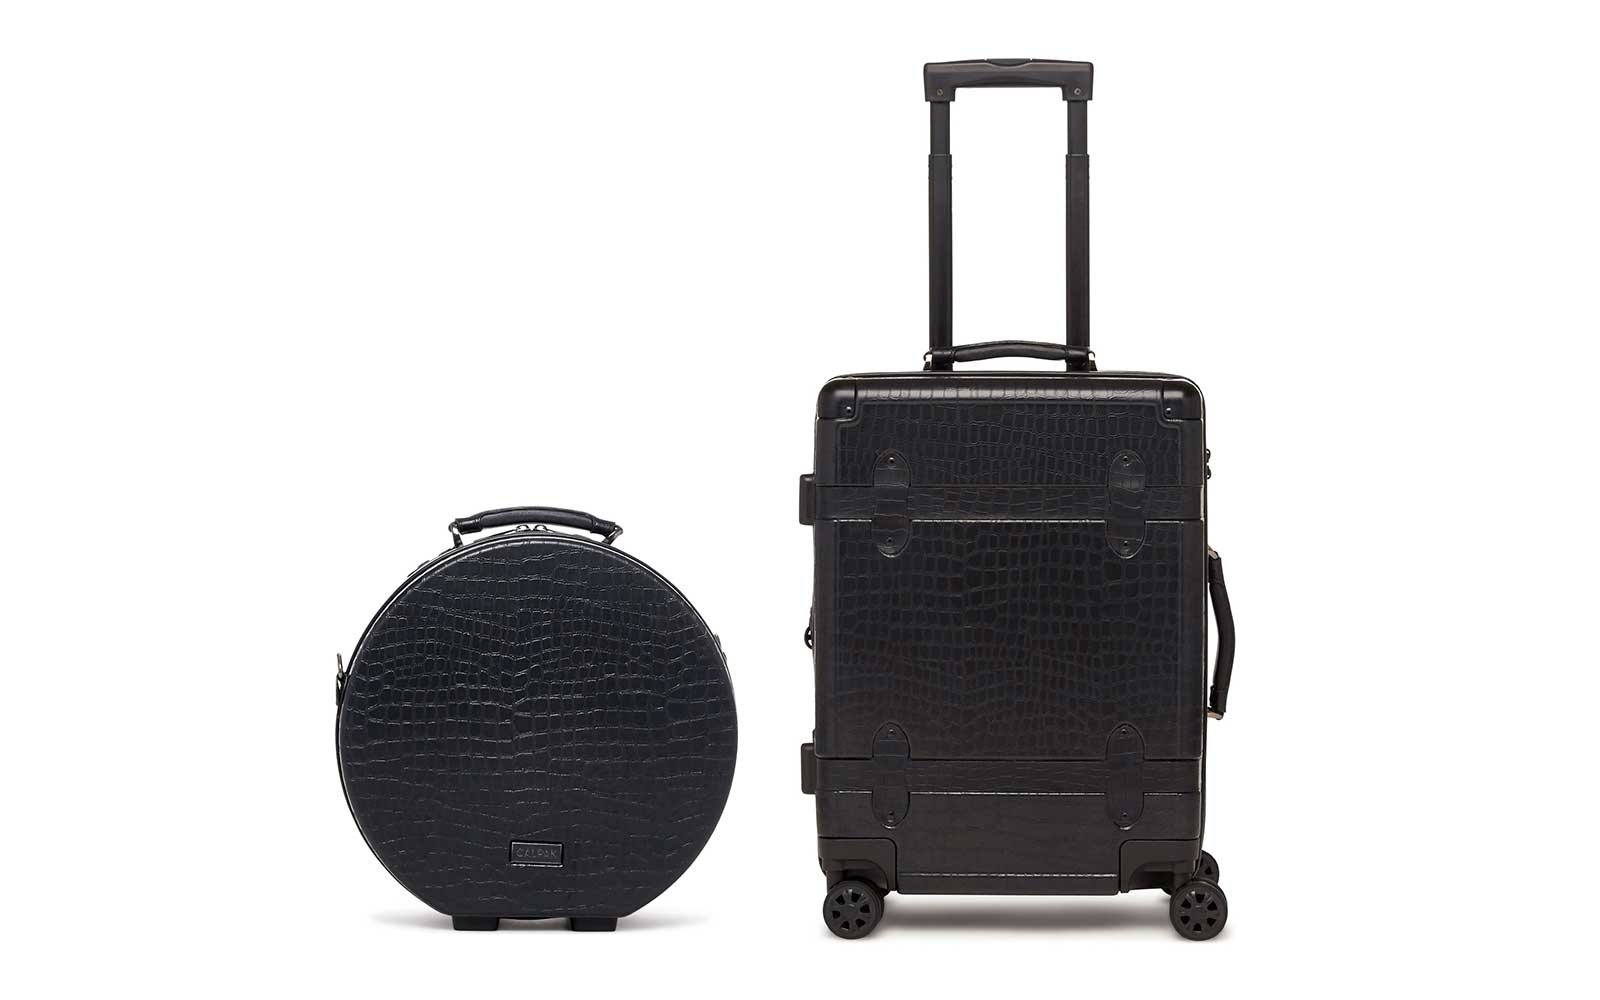 Calkpak rolling trunk and suitcase